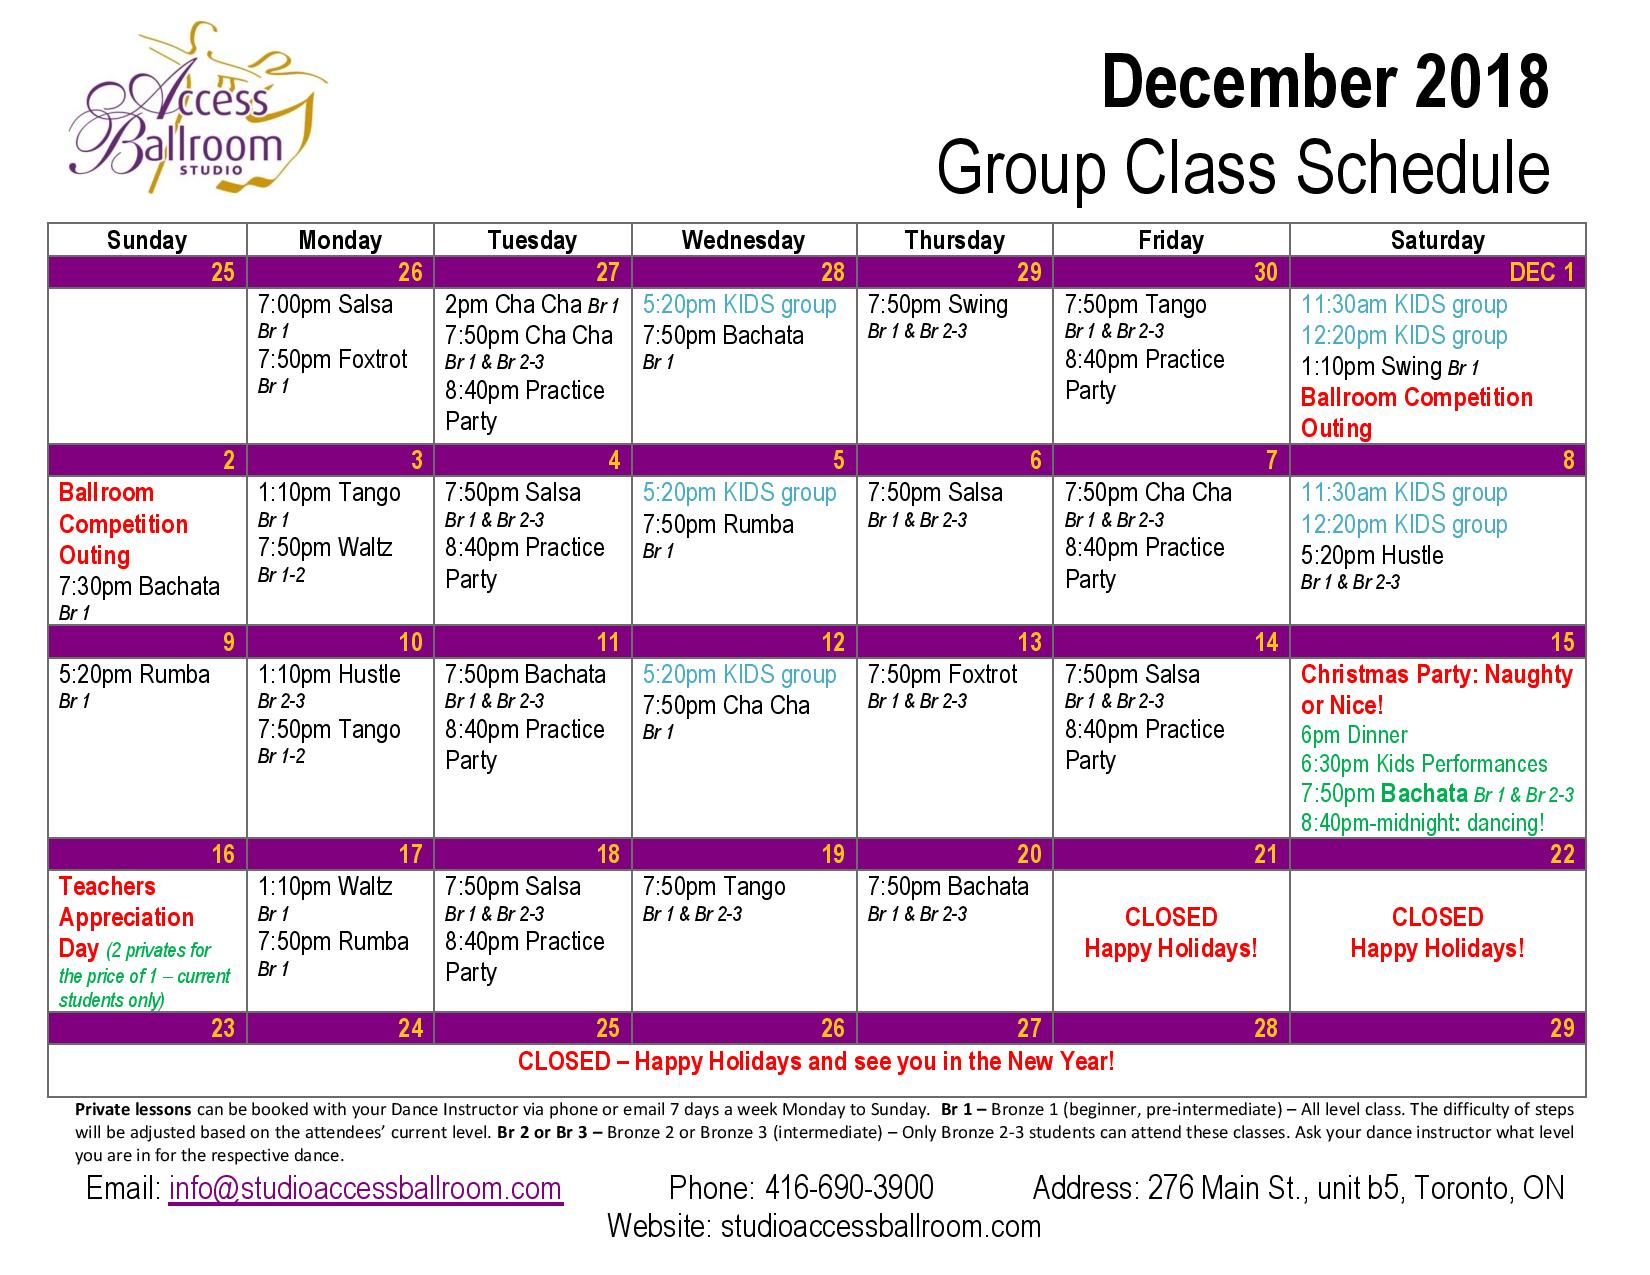 practice party salsa rueda de casino group lessons schedule classes courses picture of October 2018 Calendar at Access Ballroom Studio in the beaches - Toronto Cha Cha Salsa Merengue Waltz Tango Bachata Rumba Swing Foxtrot Viennese Waltz Hustle Hustle monday tuesday wednesday thursday friday saturday sunday